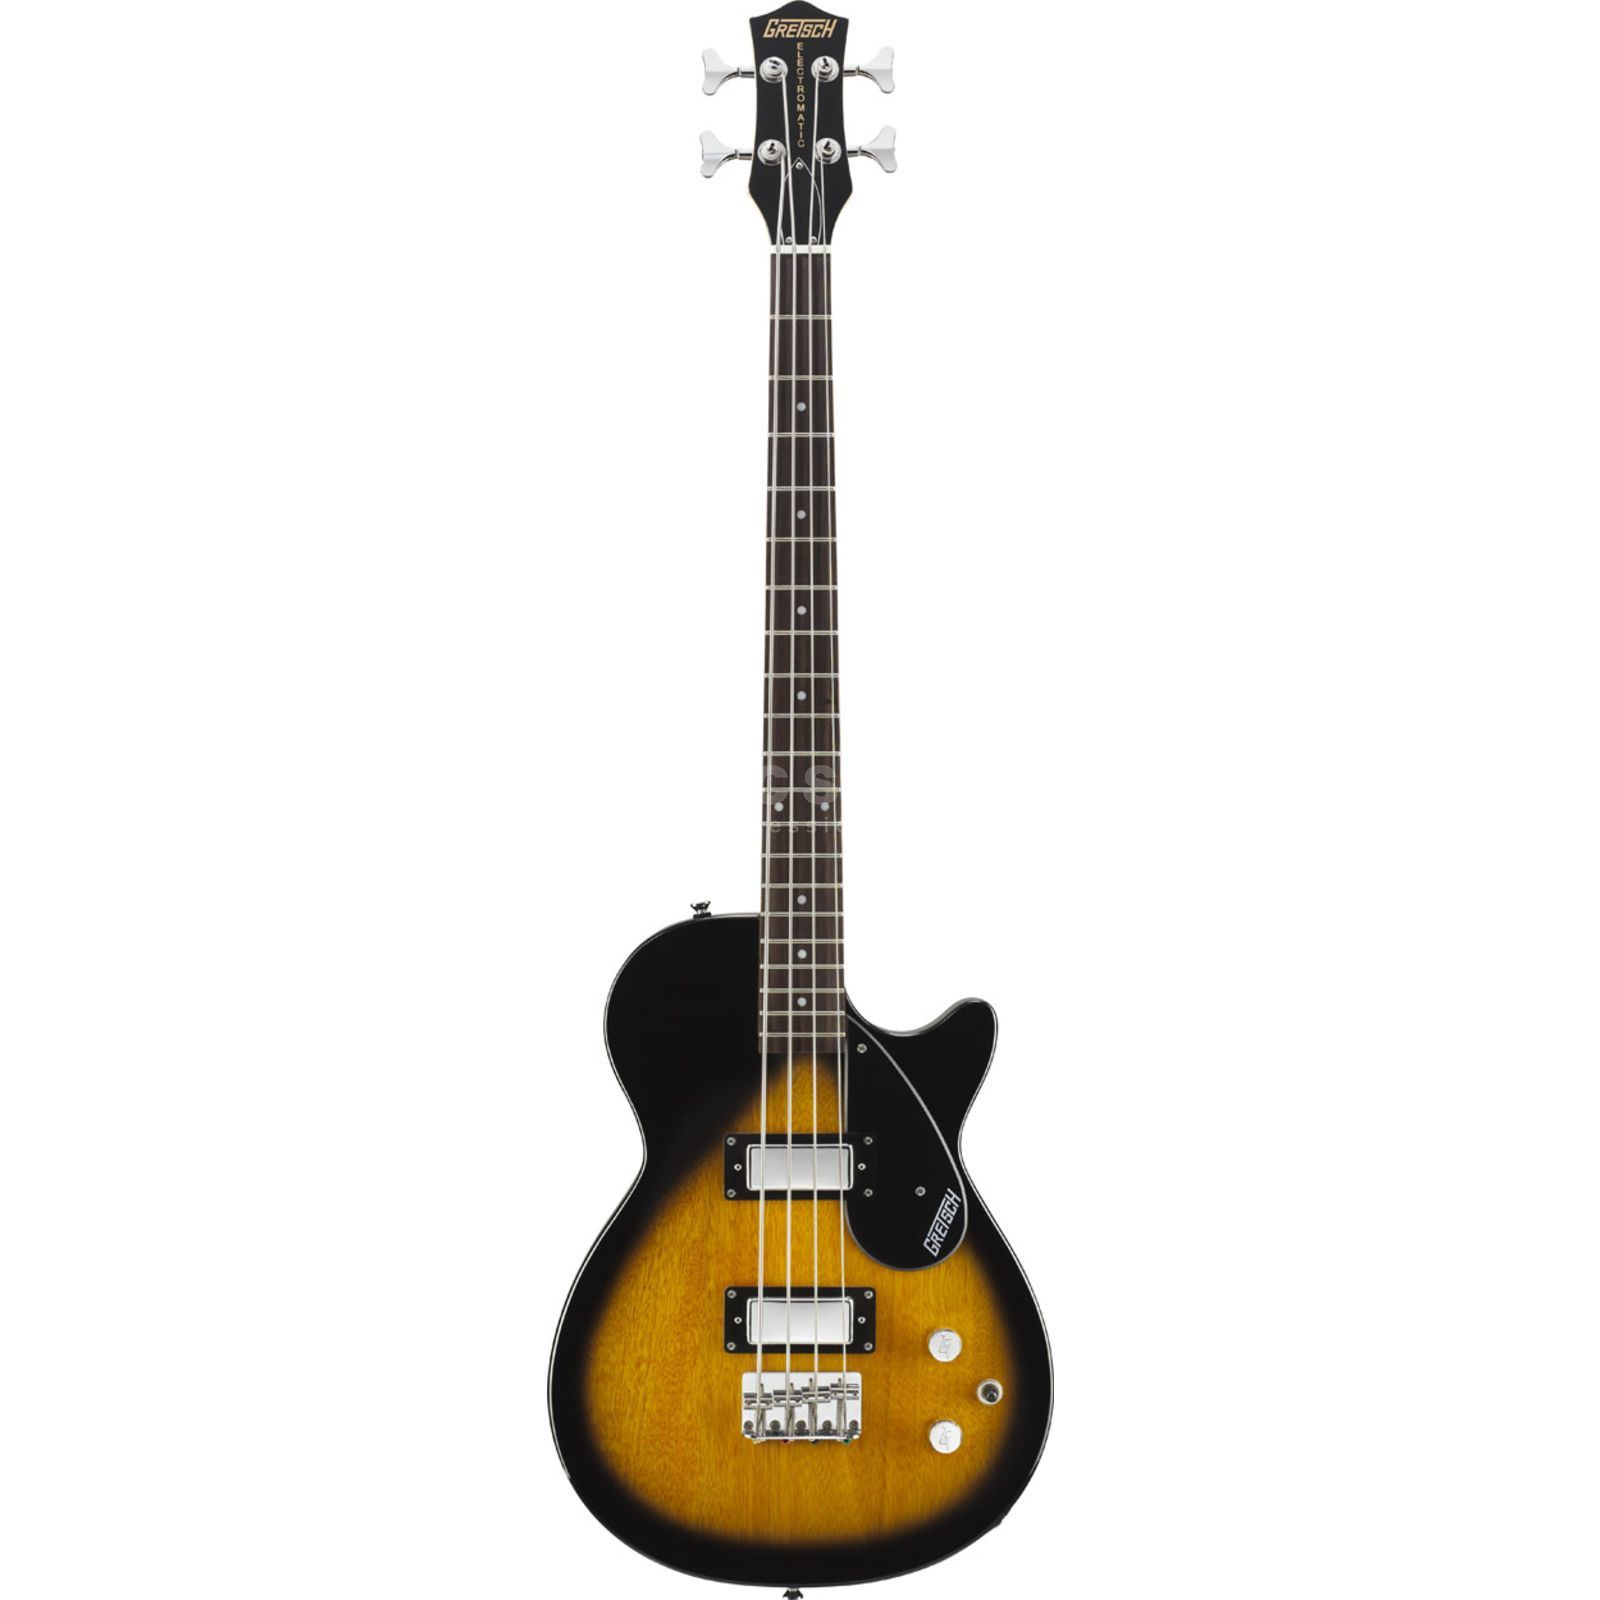 Gretsch G2224 Junior Jet Bass II SB Tobacco Sunburst Produktbild